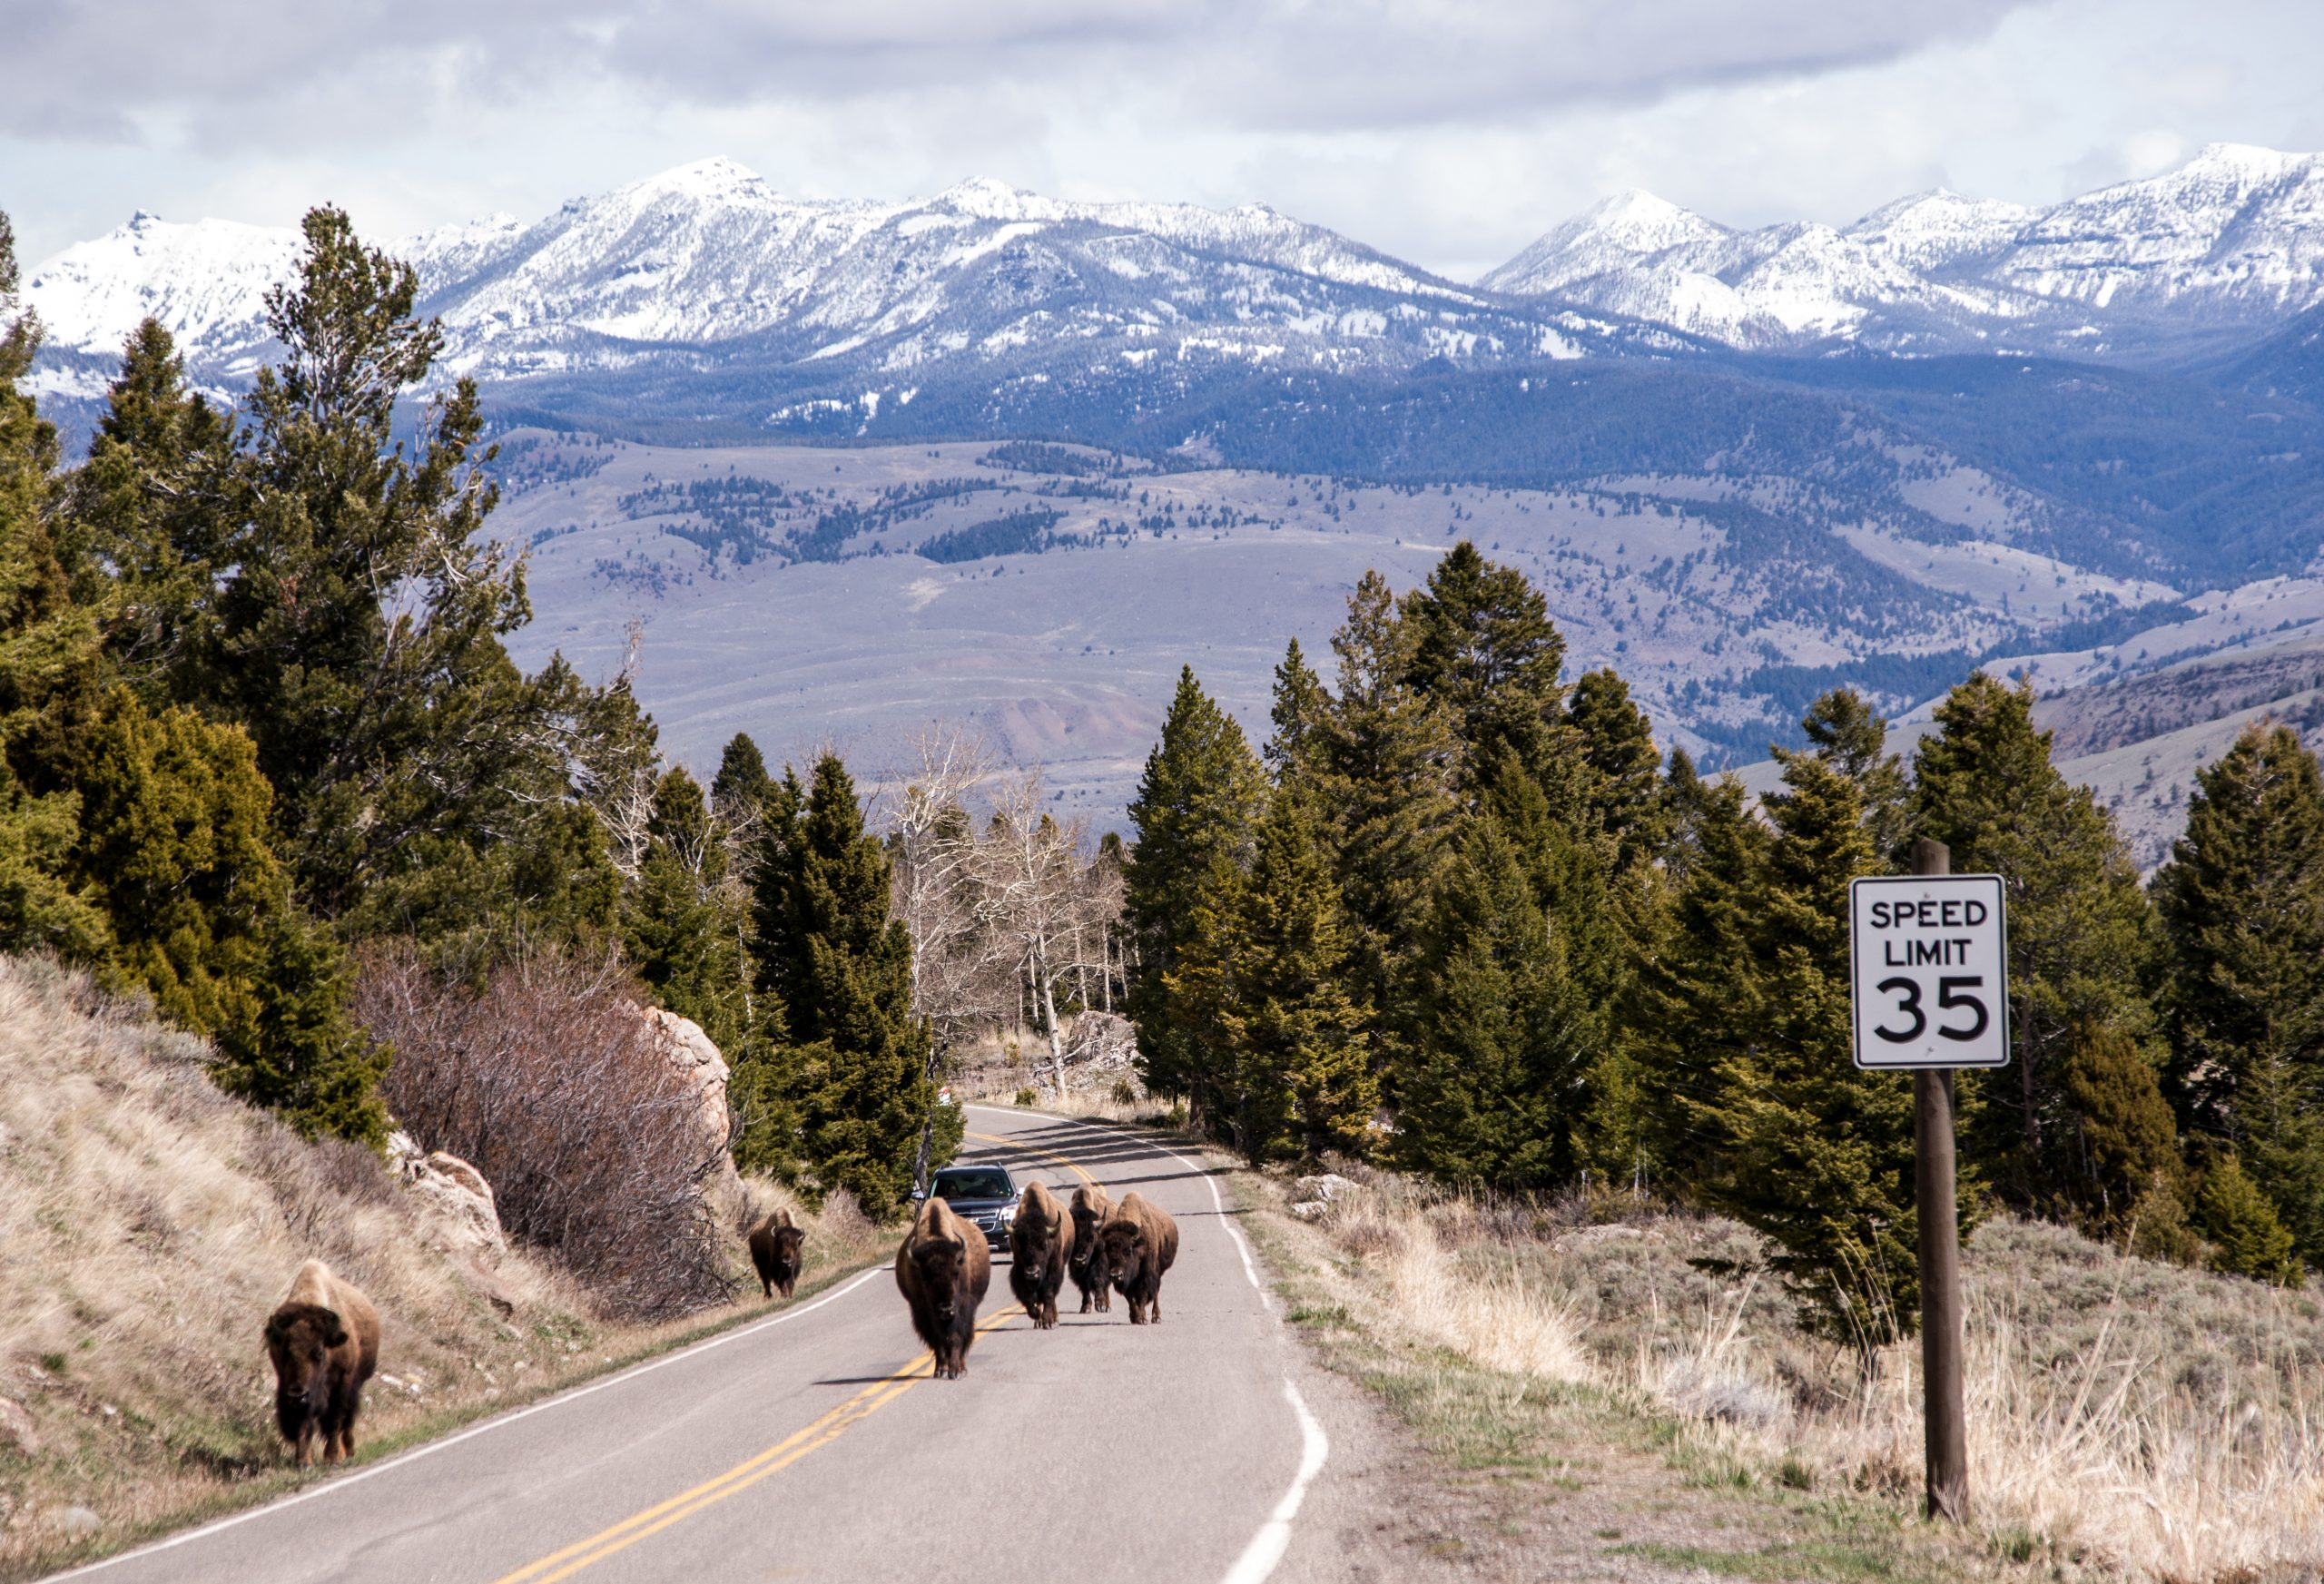 Bison Injures Visitor at Old Faithful in Yellowstone National Park